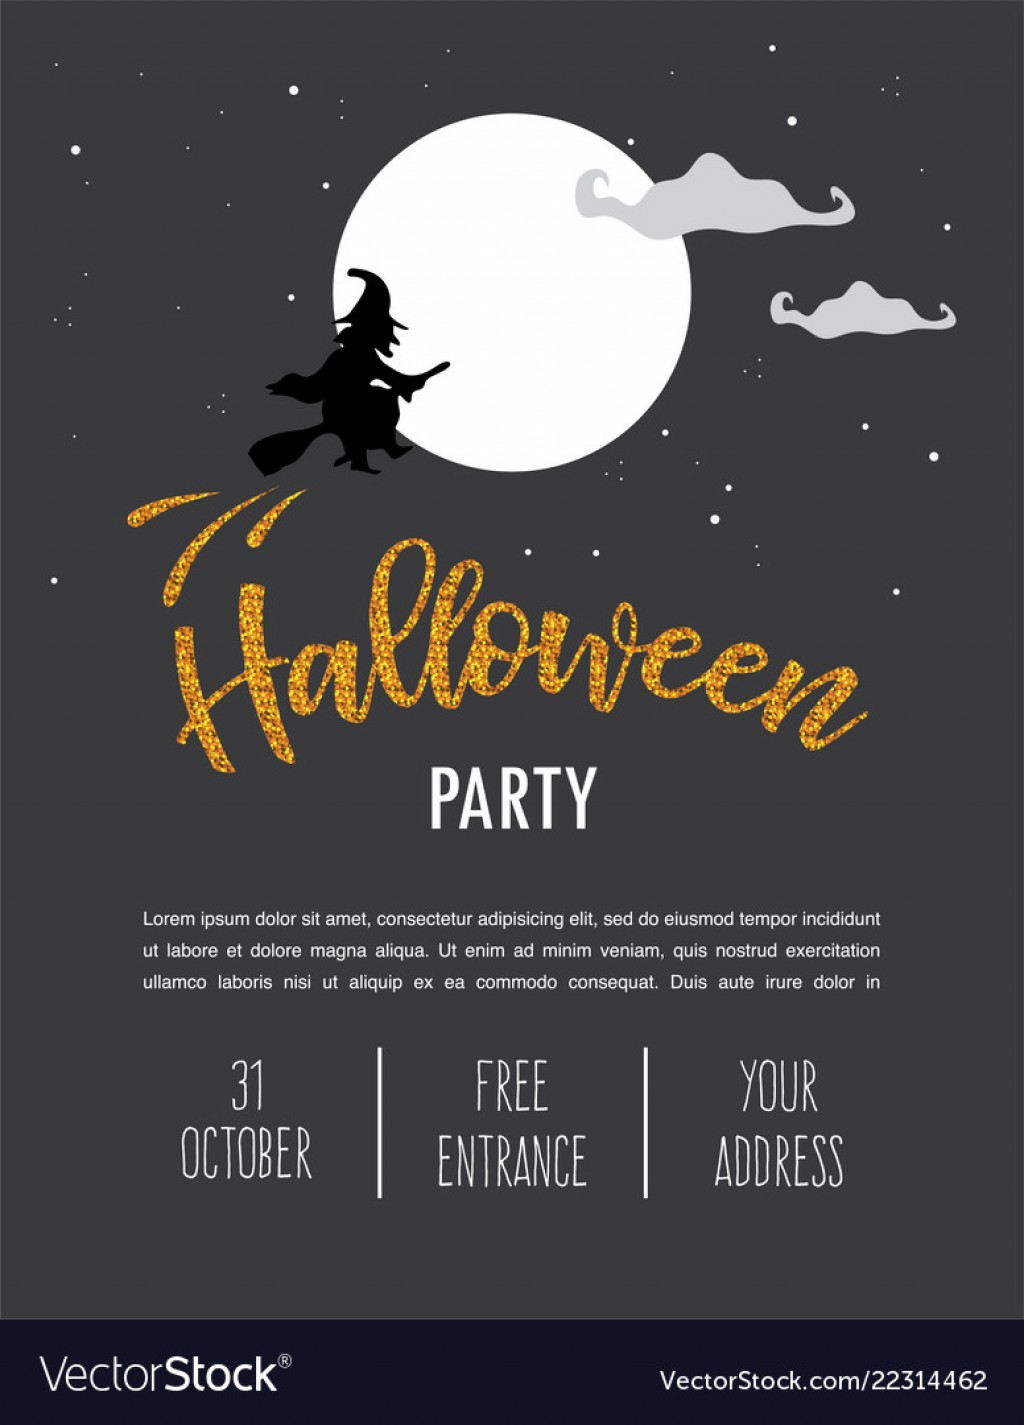 007 Exceptional Free Halloween Party Invitation Template High Definition  Templates Download Printable BirthdayLarge